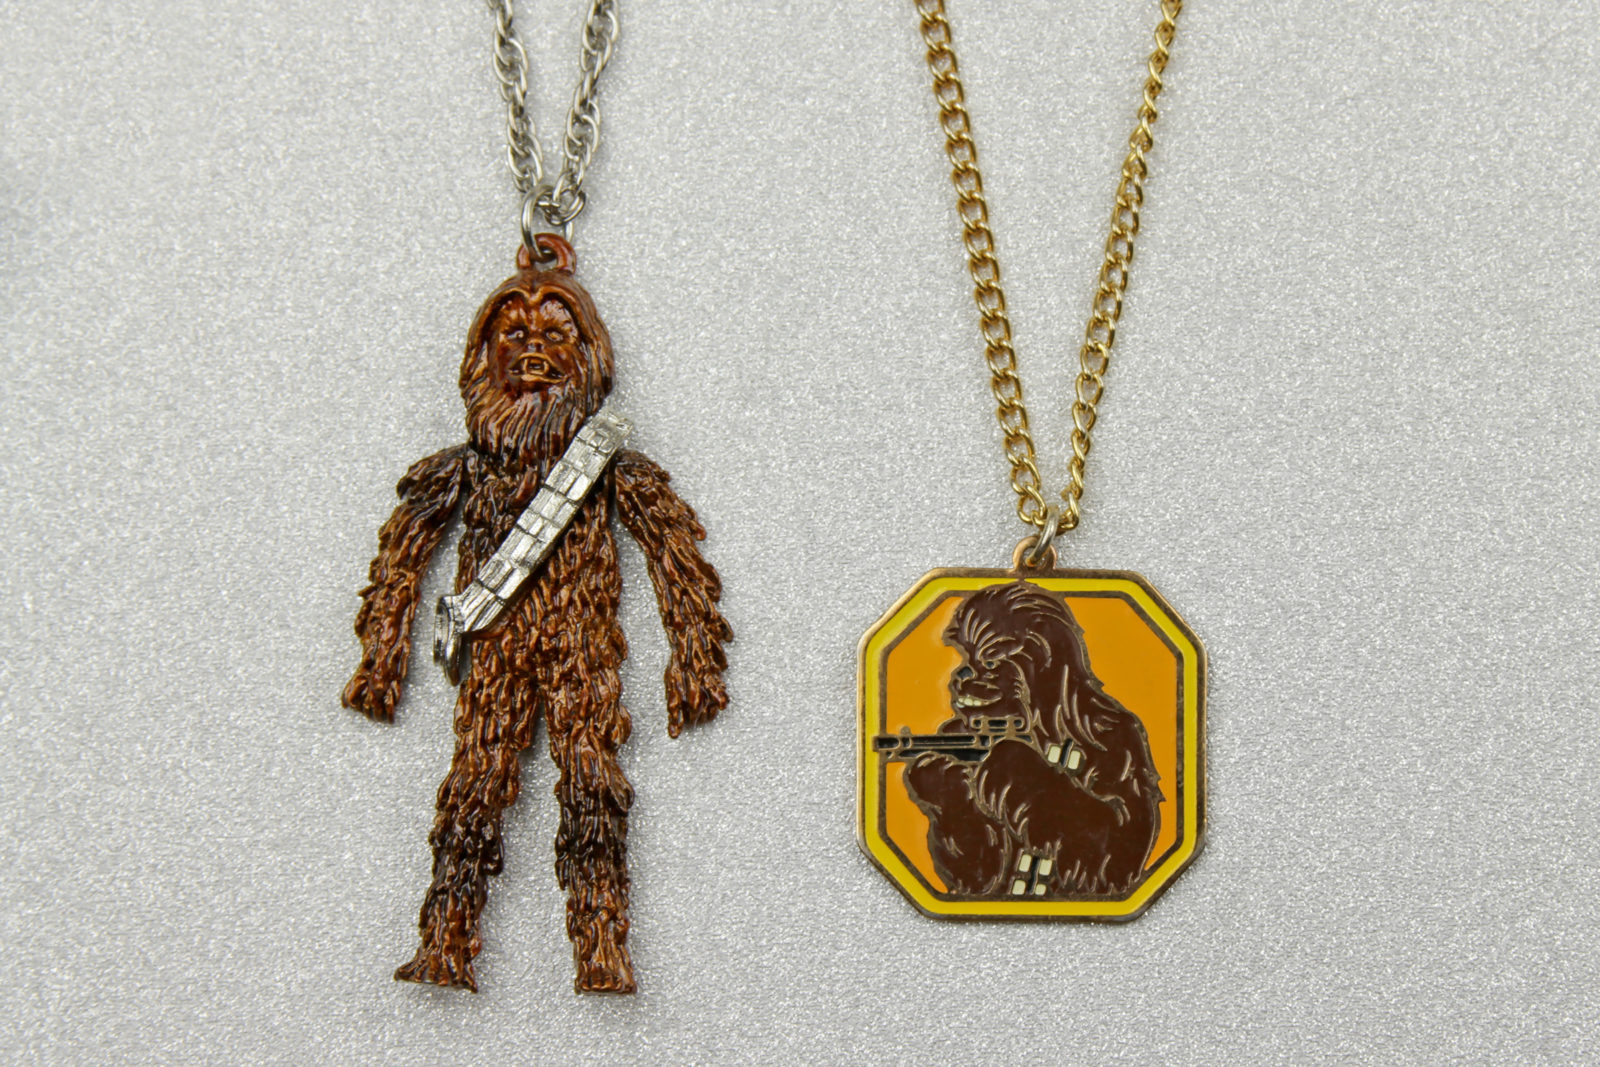 Vintage Star Wars Chewbacca Necklaces from 1977 and 1980